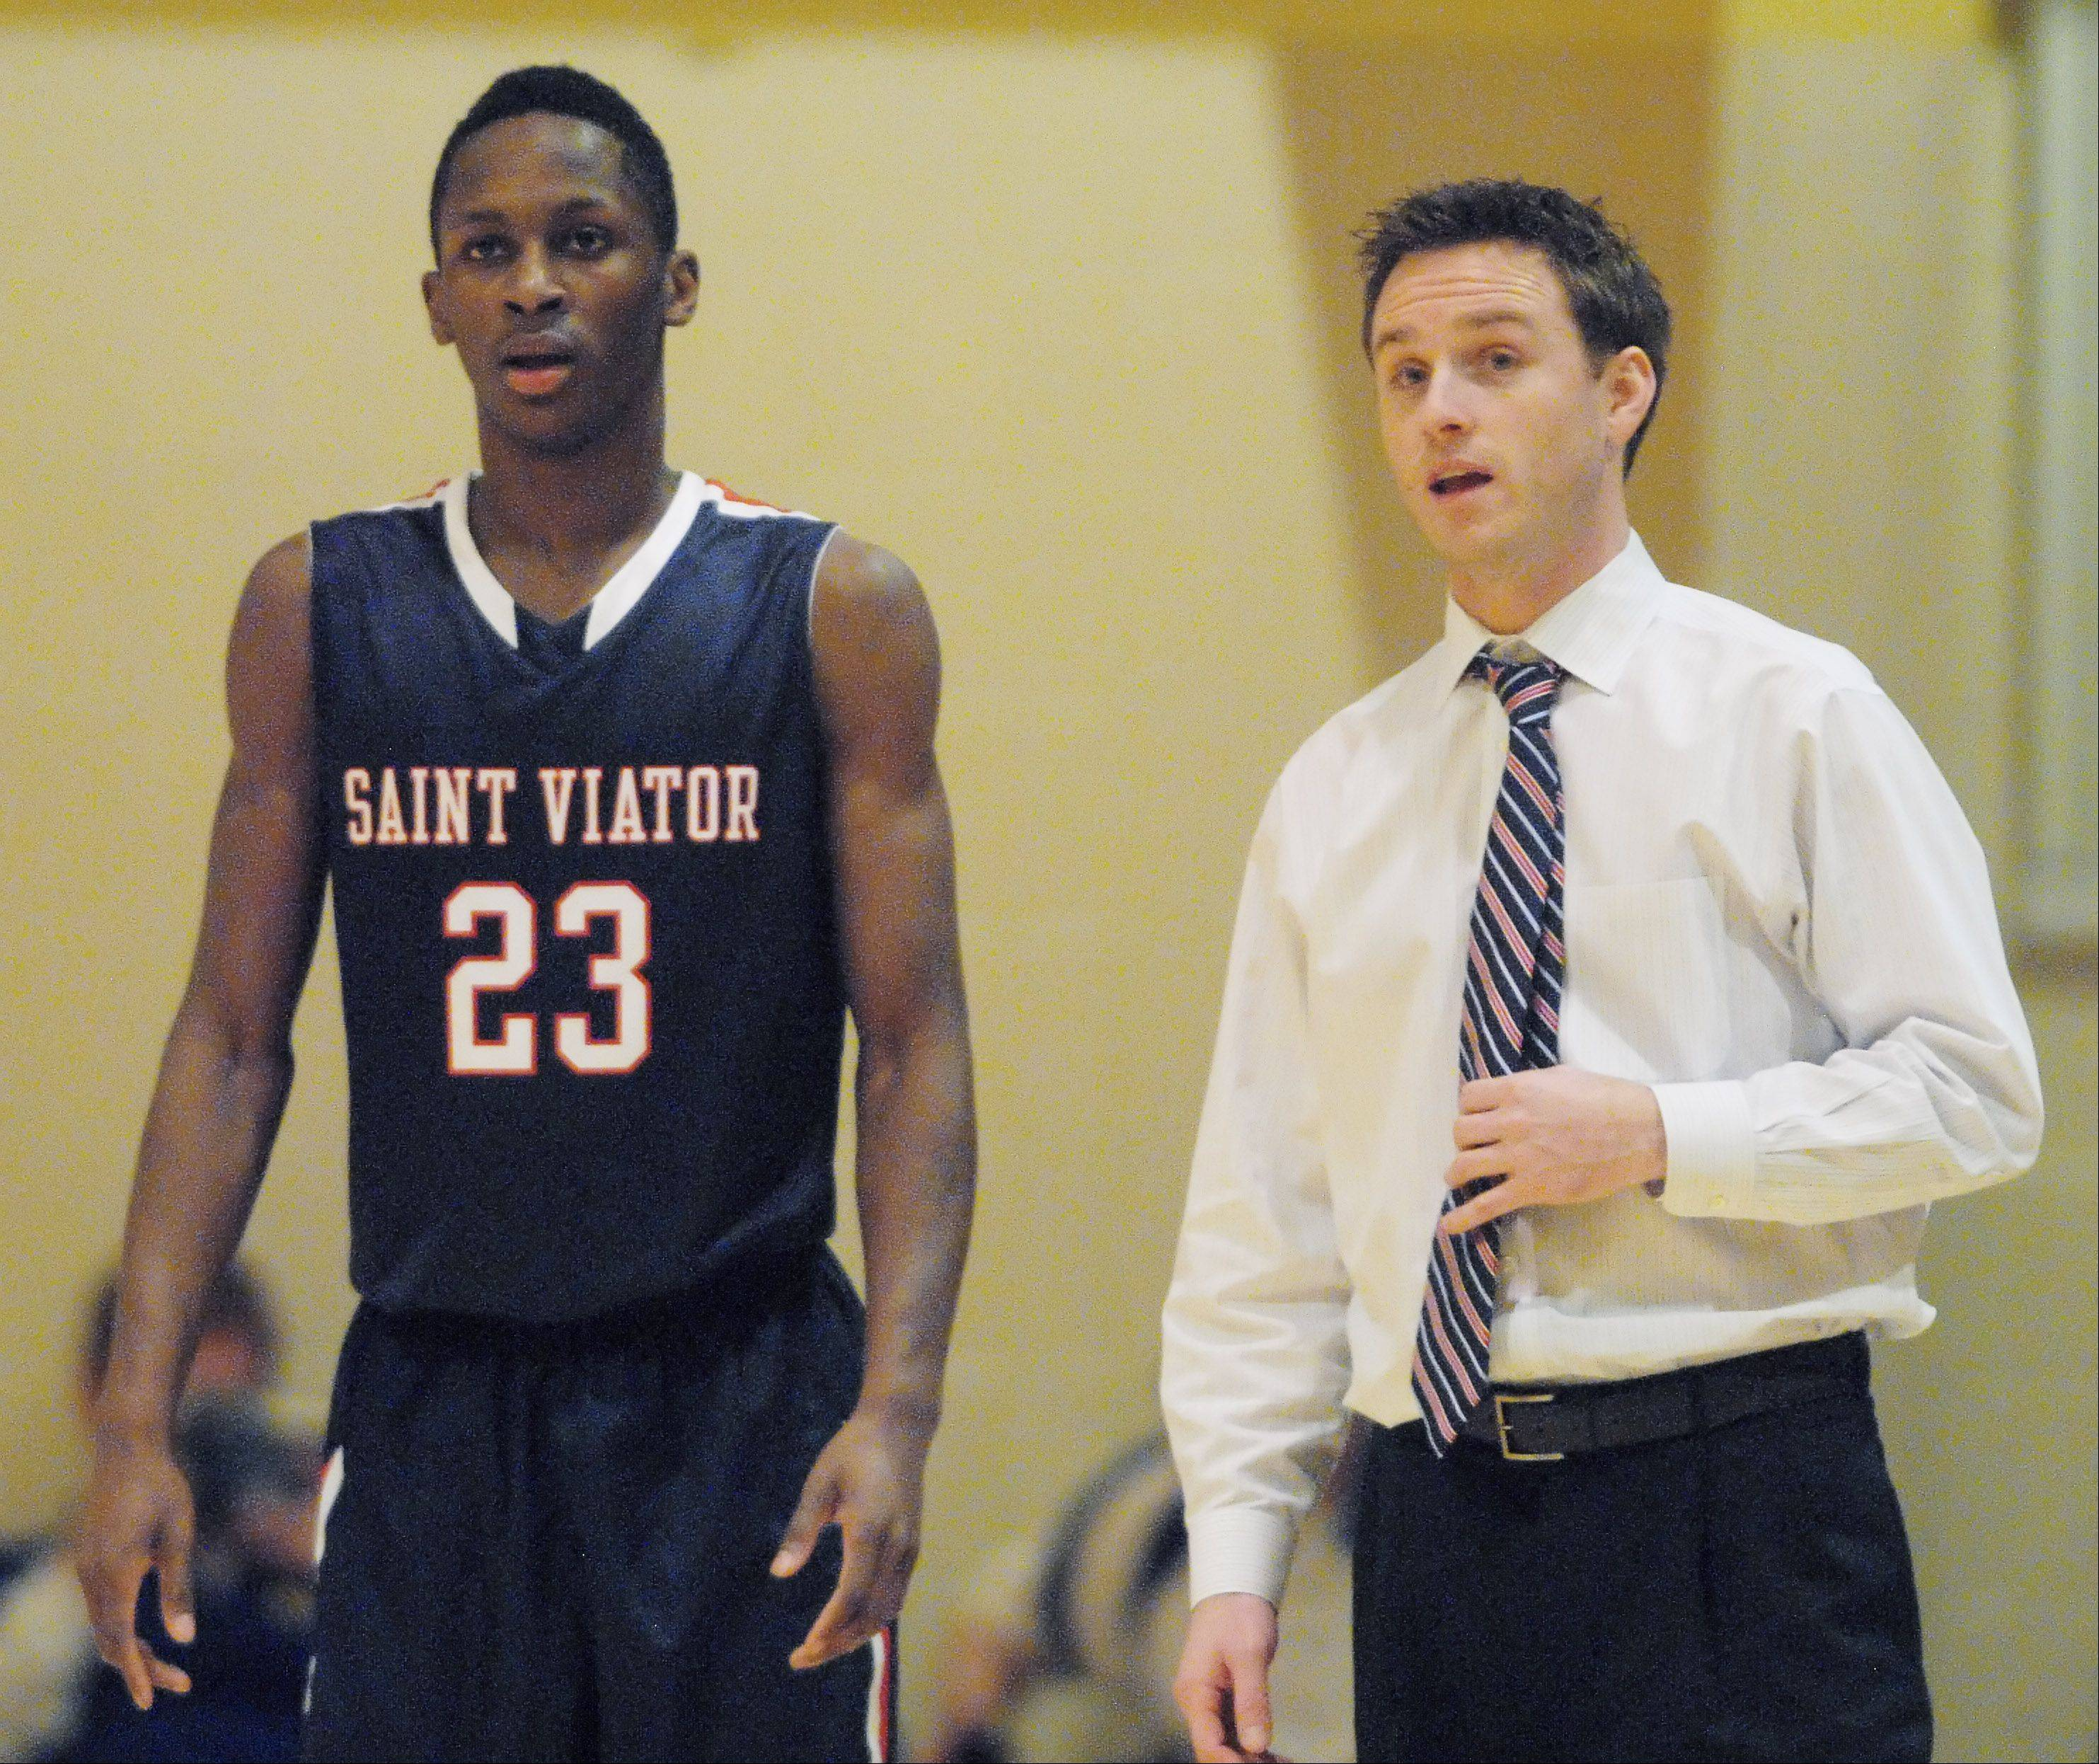 Sophomore Ore Arogundade helped make it a memorable first year for Mike Howland as a head coach at St. Viator. Howland was chosen as an Illinois Basketball Coaches Association and East Suburban Catholic Conference coach of the year.